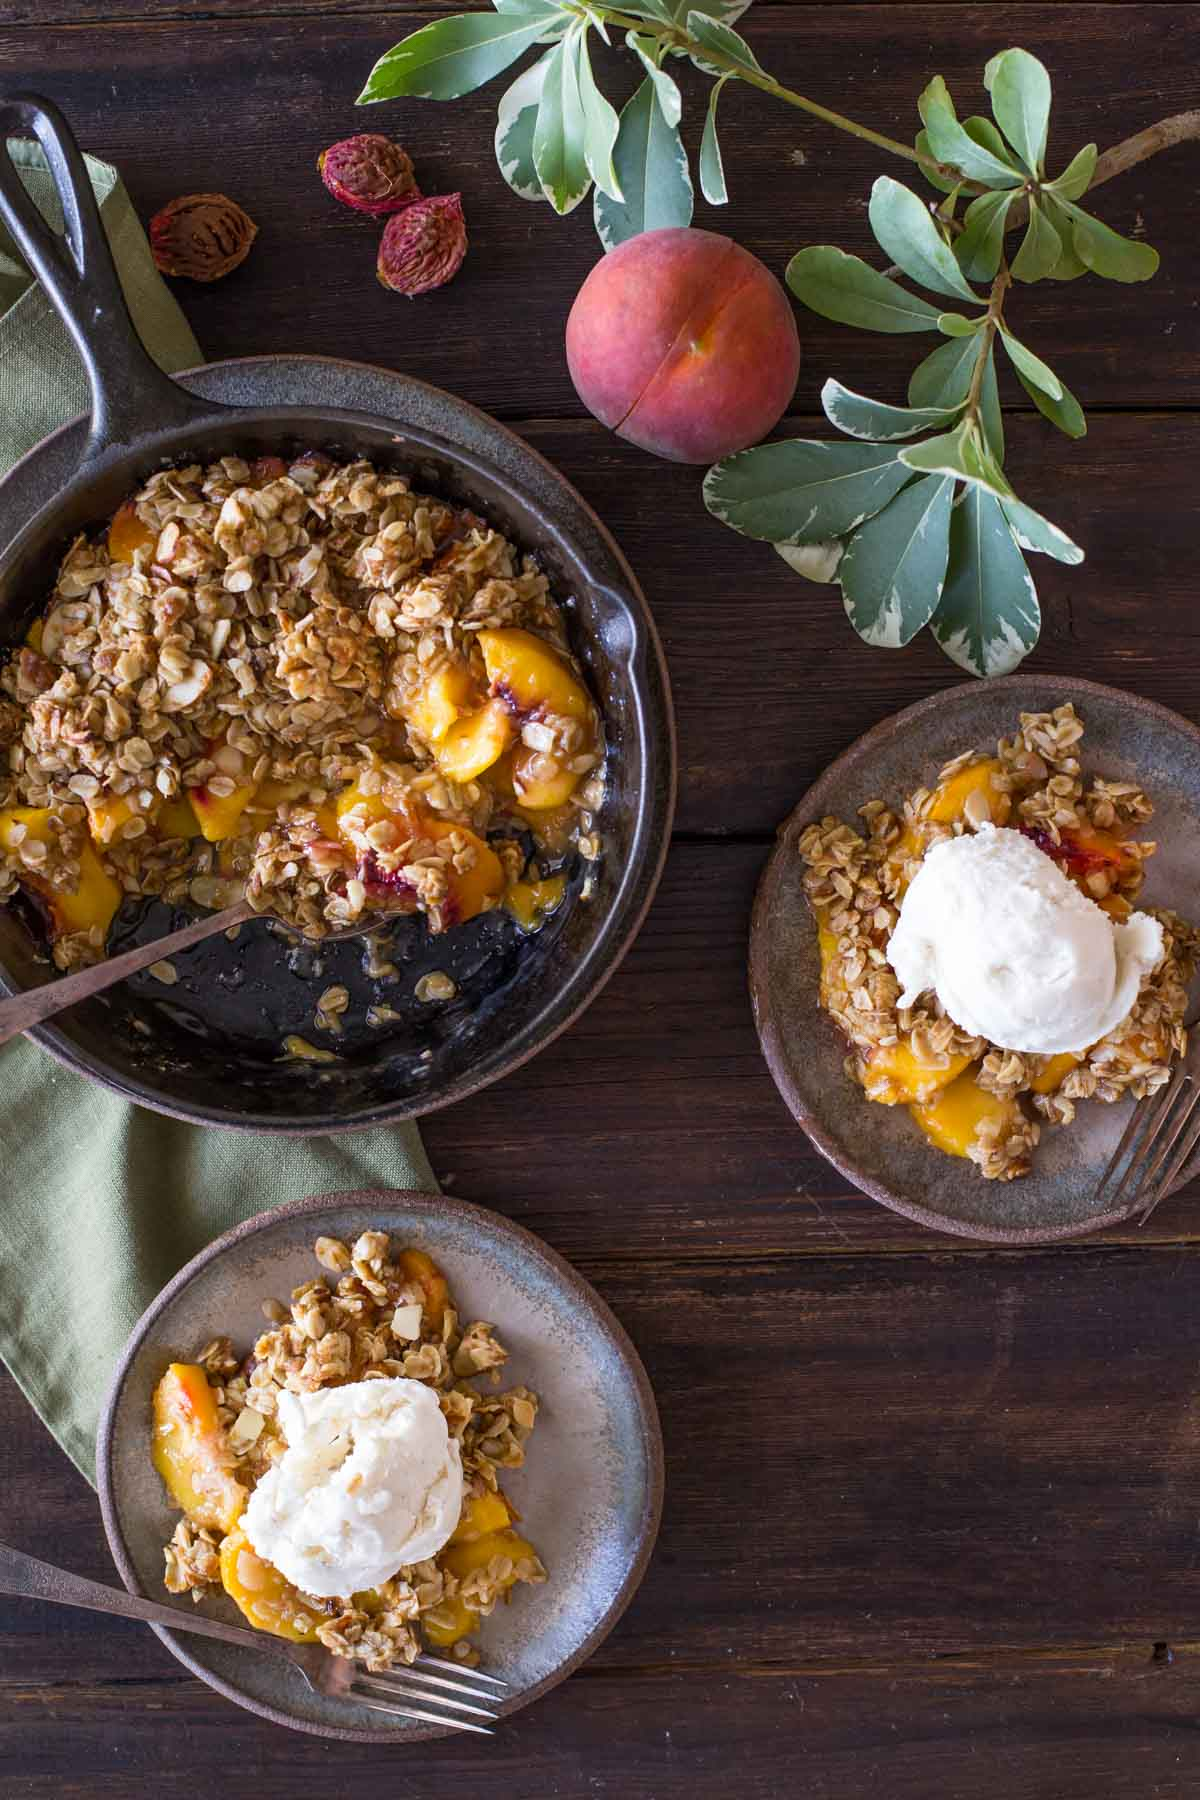 Two plates of Easy Skillet Peach Crisp topped with vanilla ice cream, sitting next to the skillet of Peach Crisp, as well as a whole peach and a few peach pits.